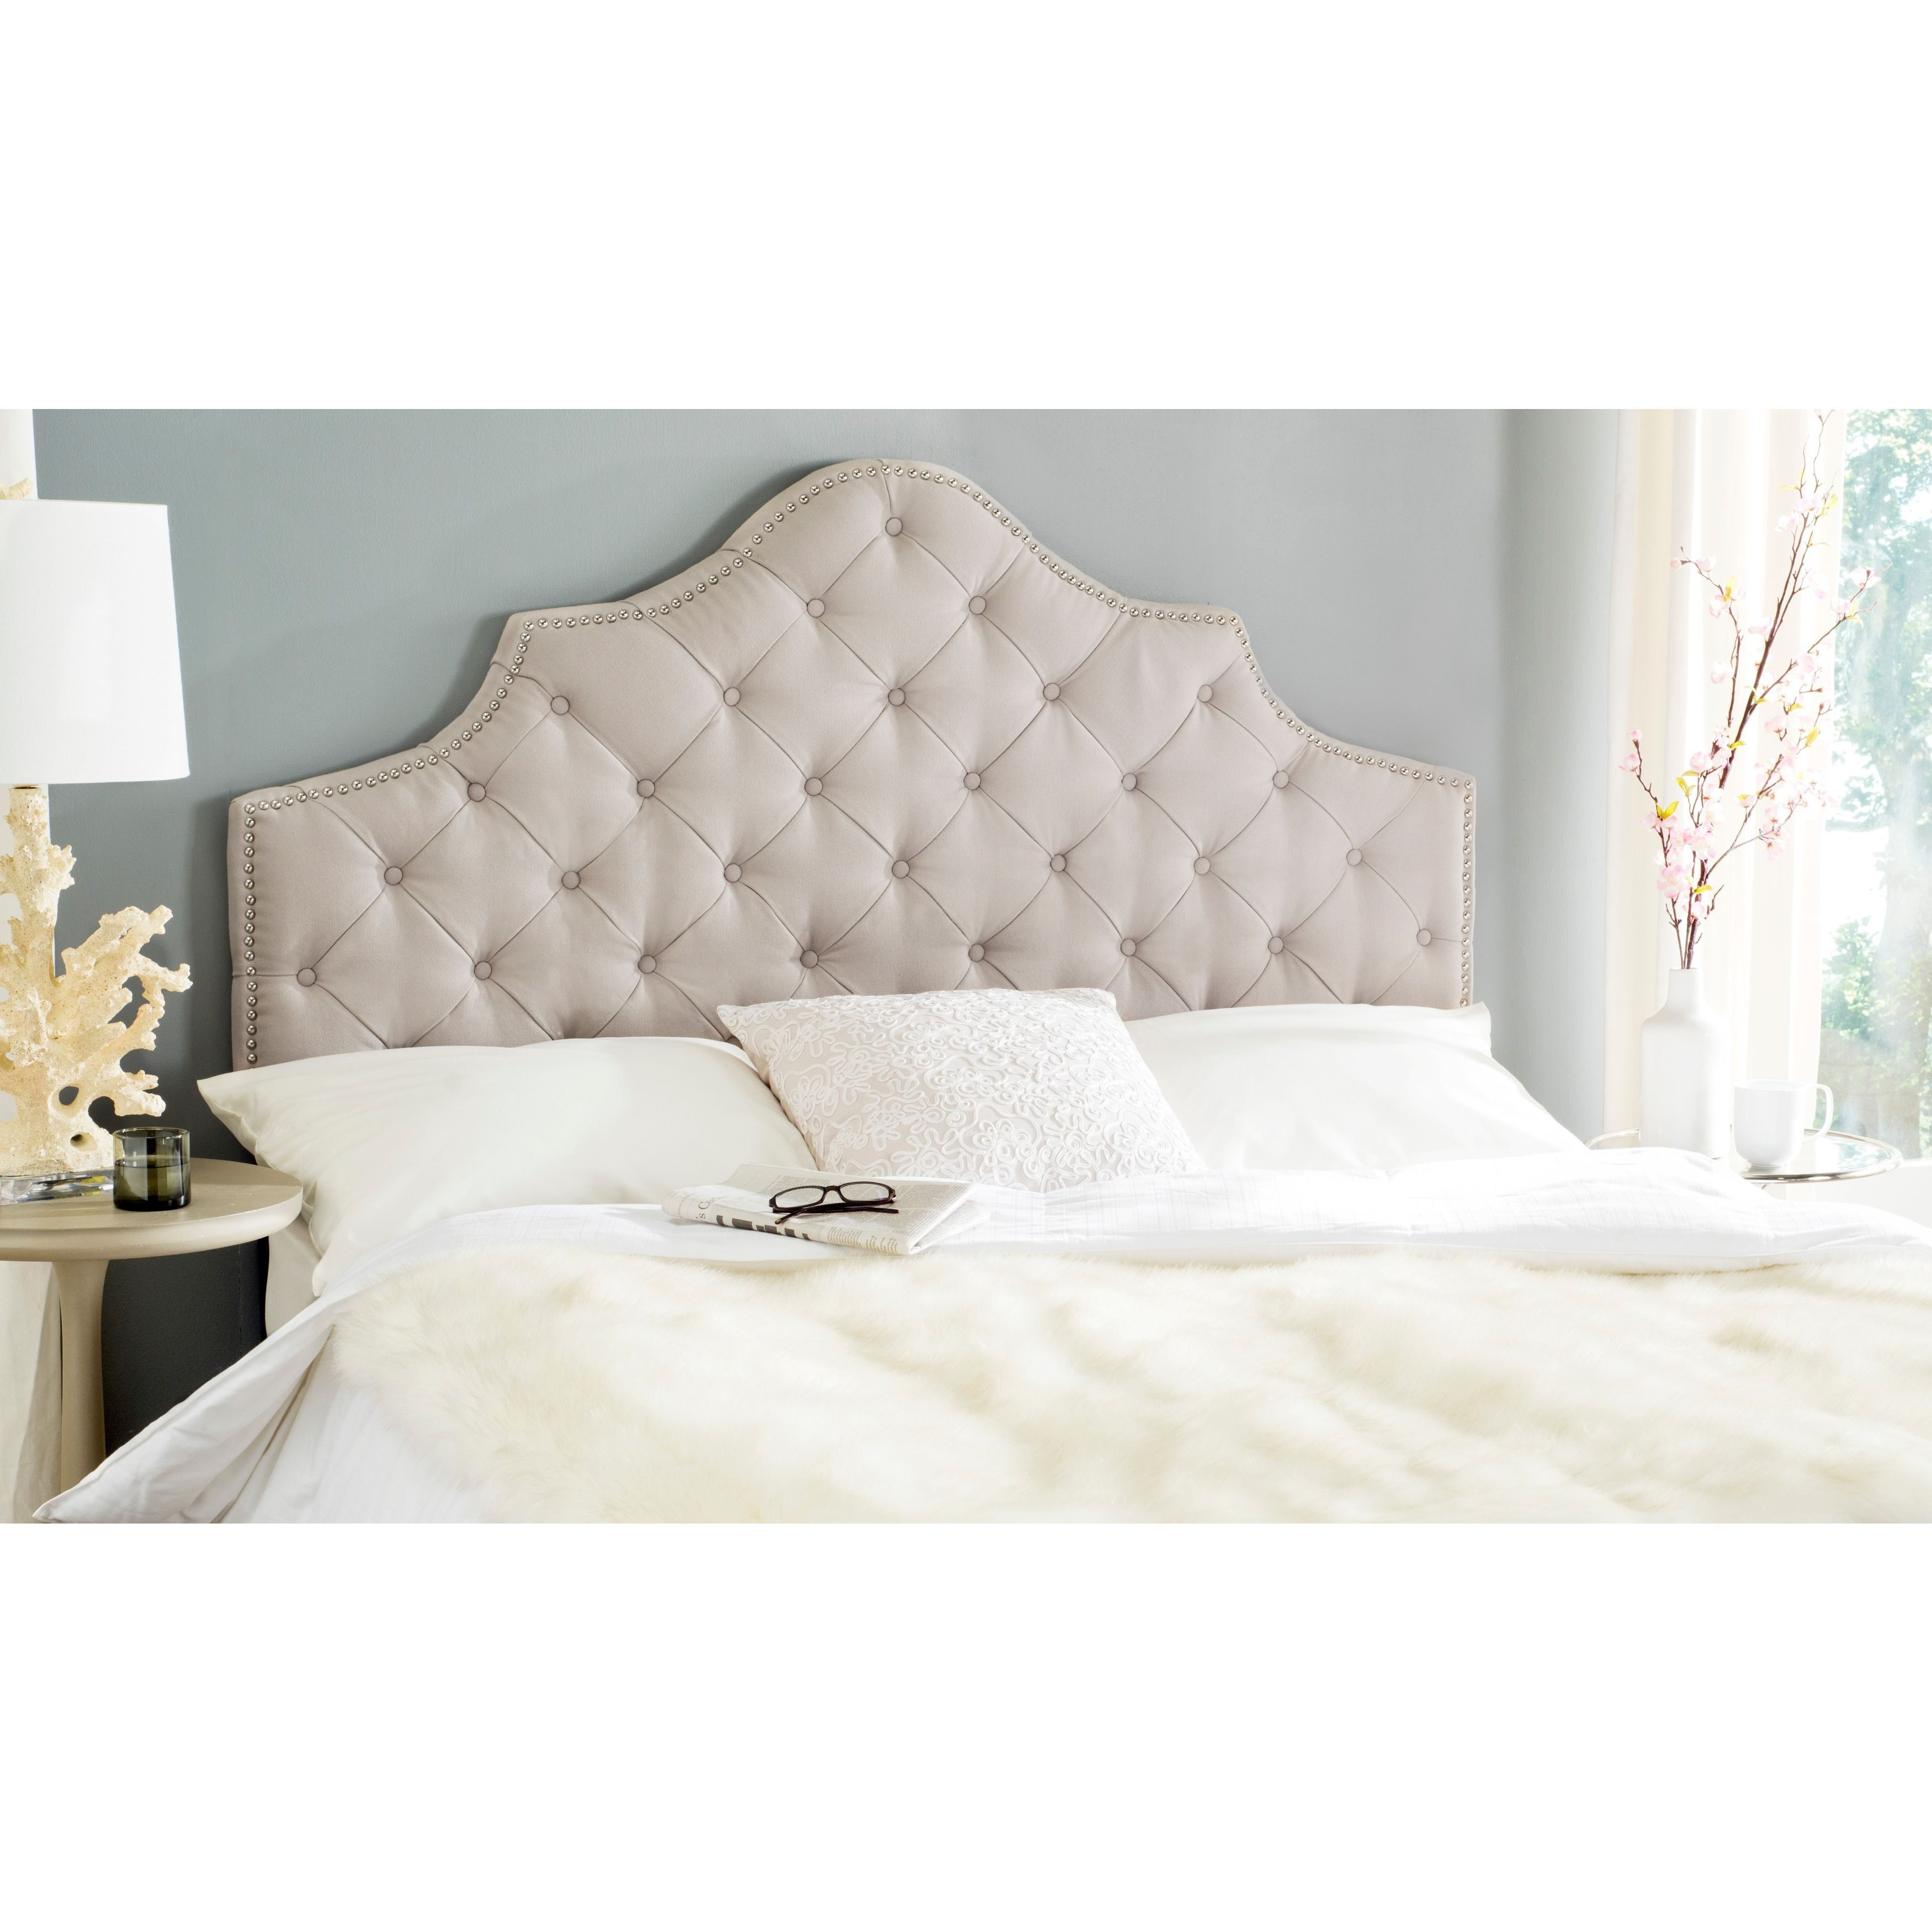 Safavieh Arebelle Taupe Linen Upholstered Tufted Headboard   Silver  Nailhead (King (MCR4037A),